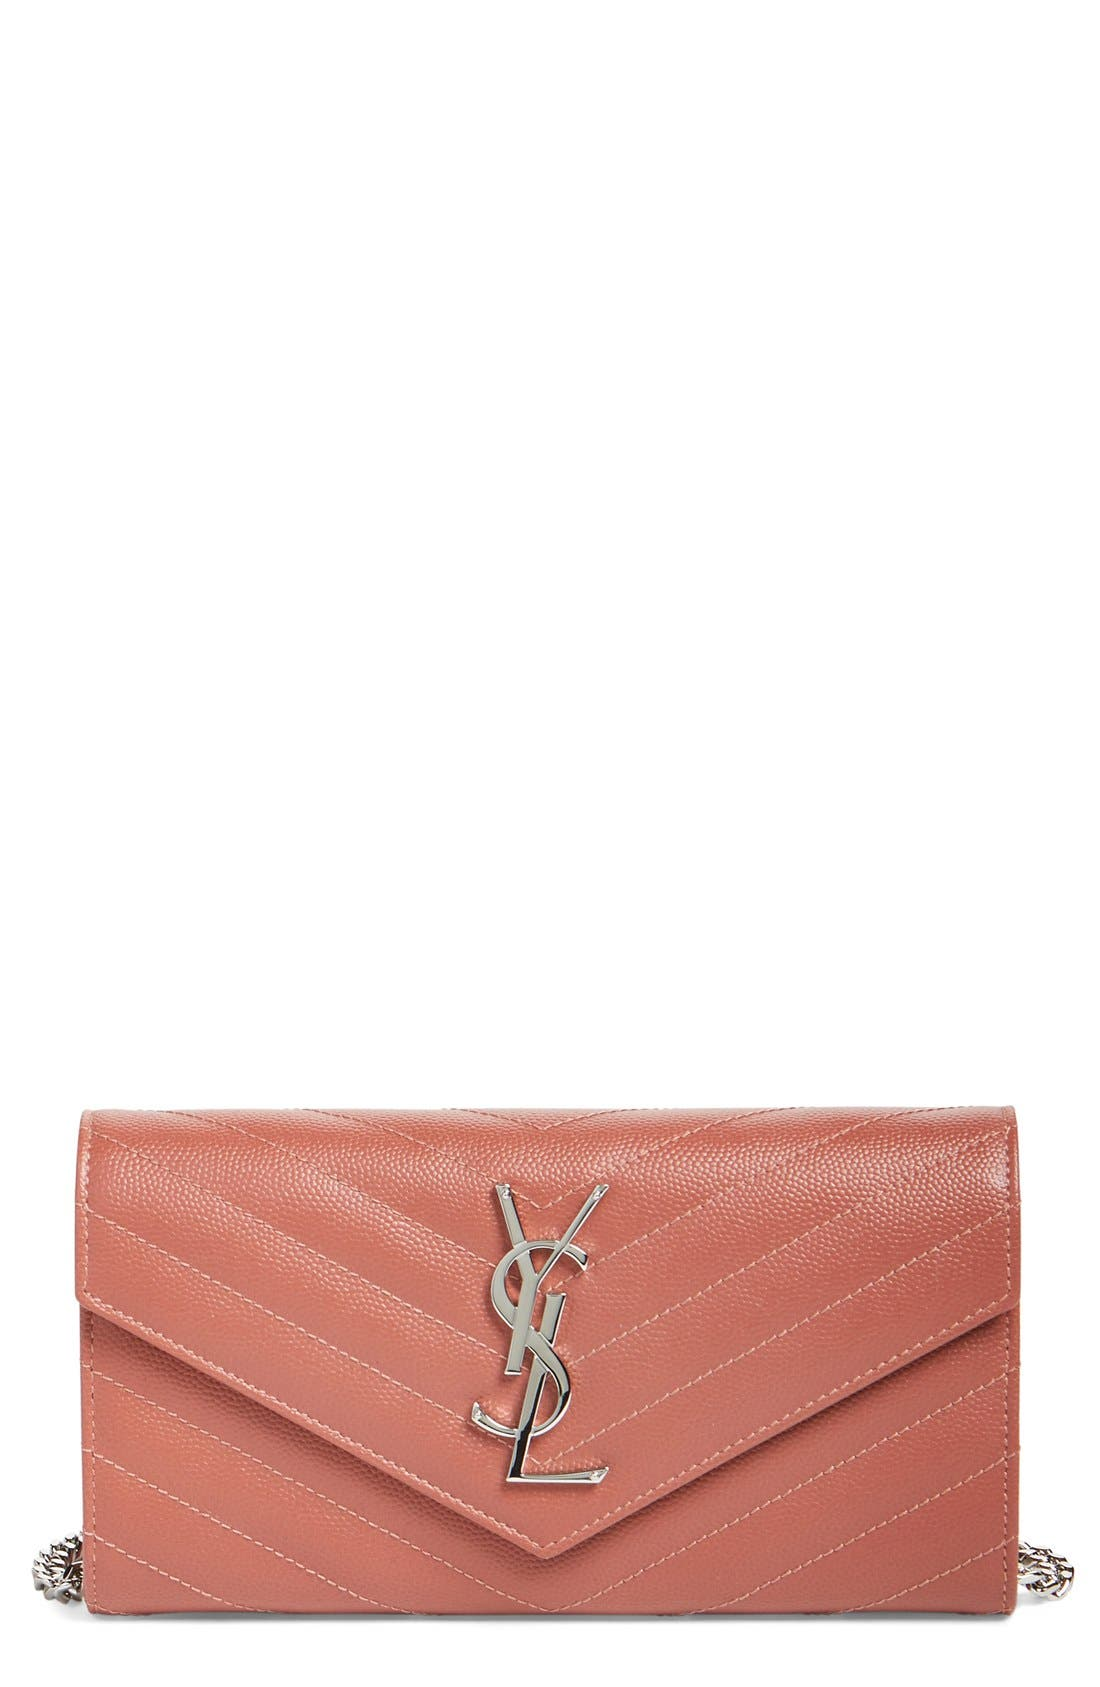 Alternate Image 1 Selected - Saint Laurent 'Small Monogram' Calfskin Wallet on a Chain